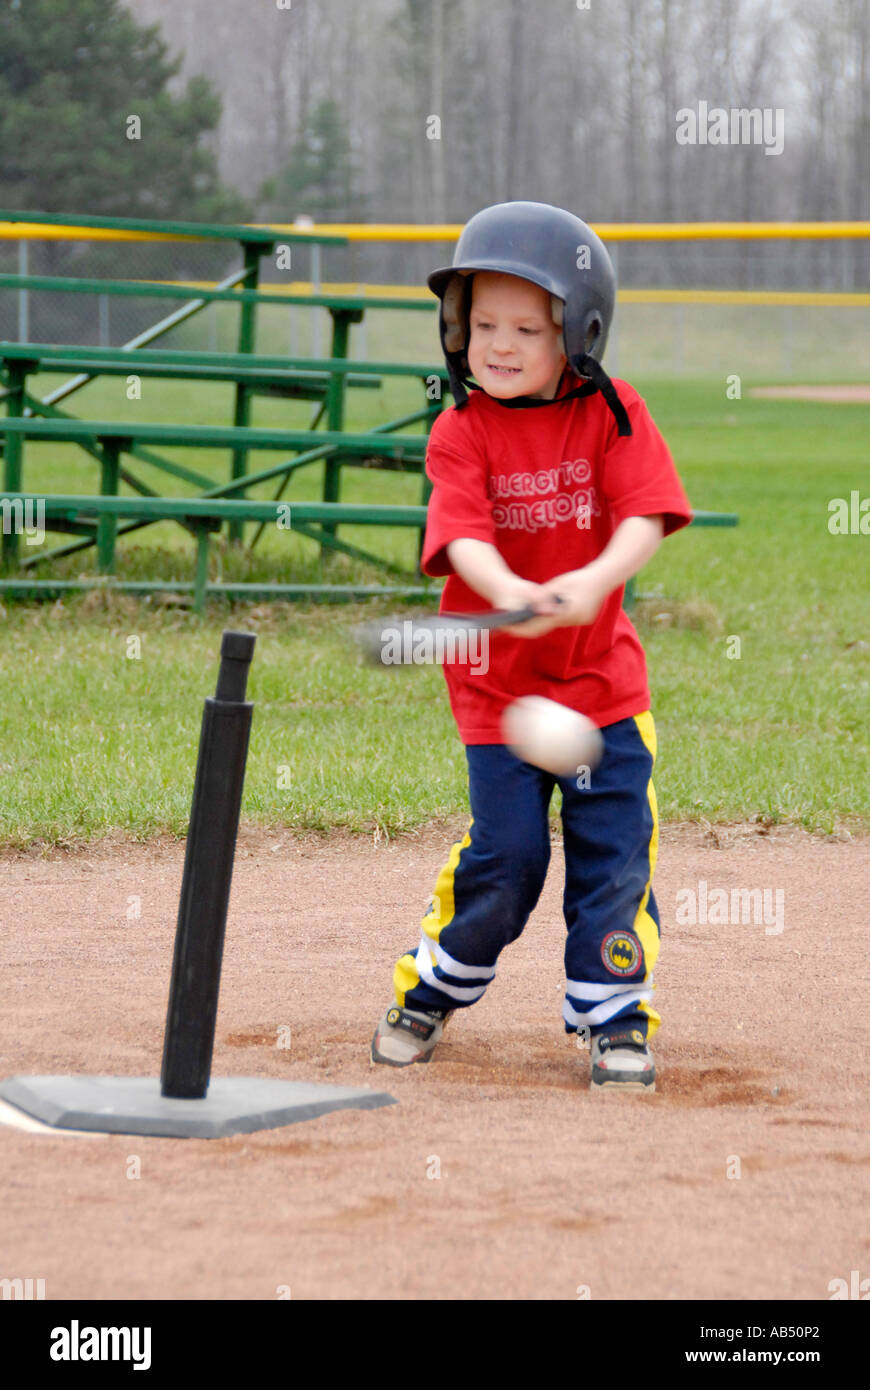 how to play t ball instructions